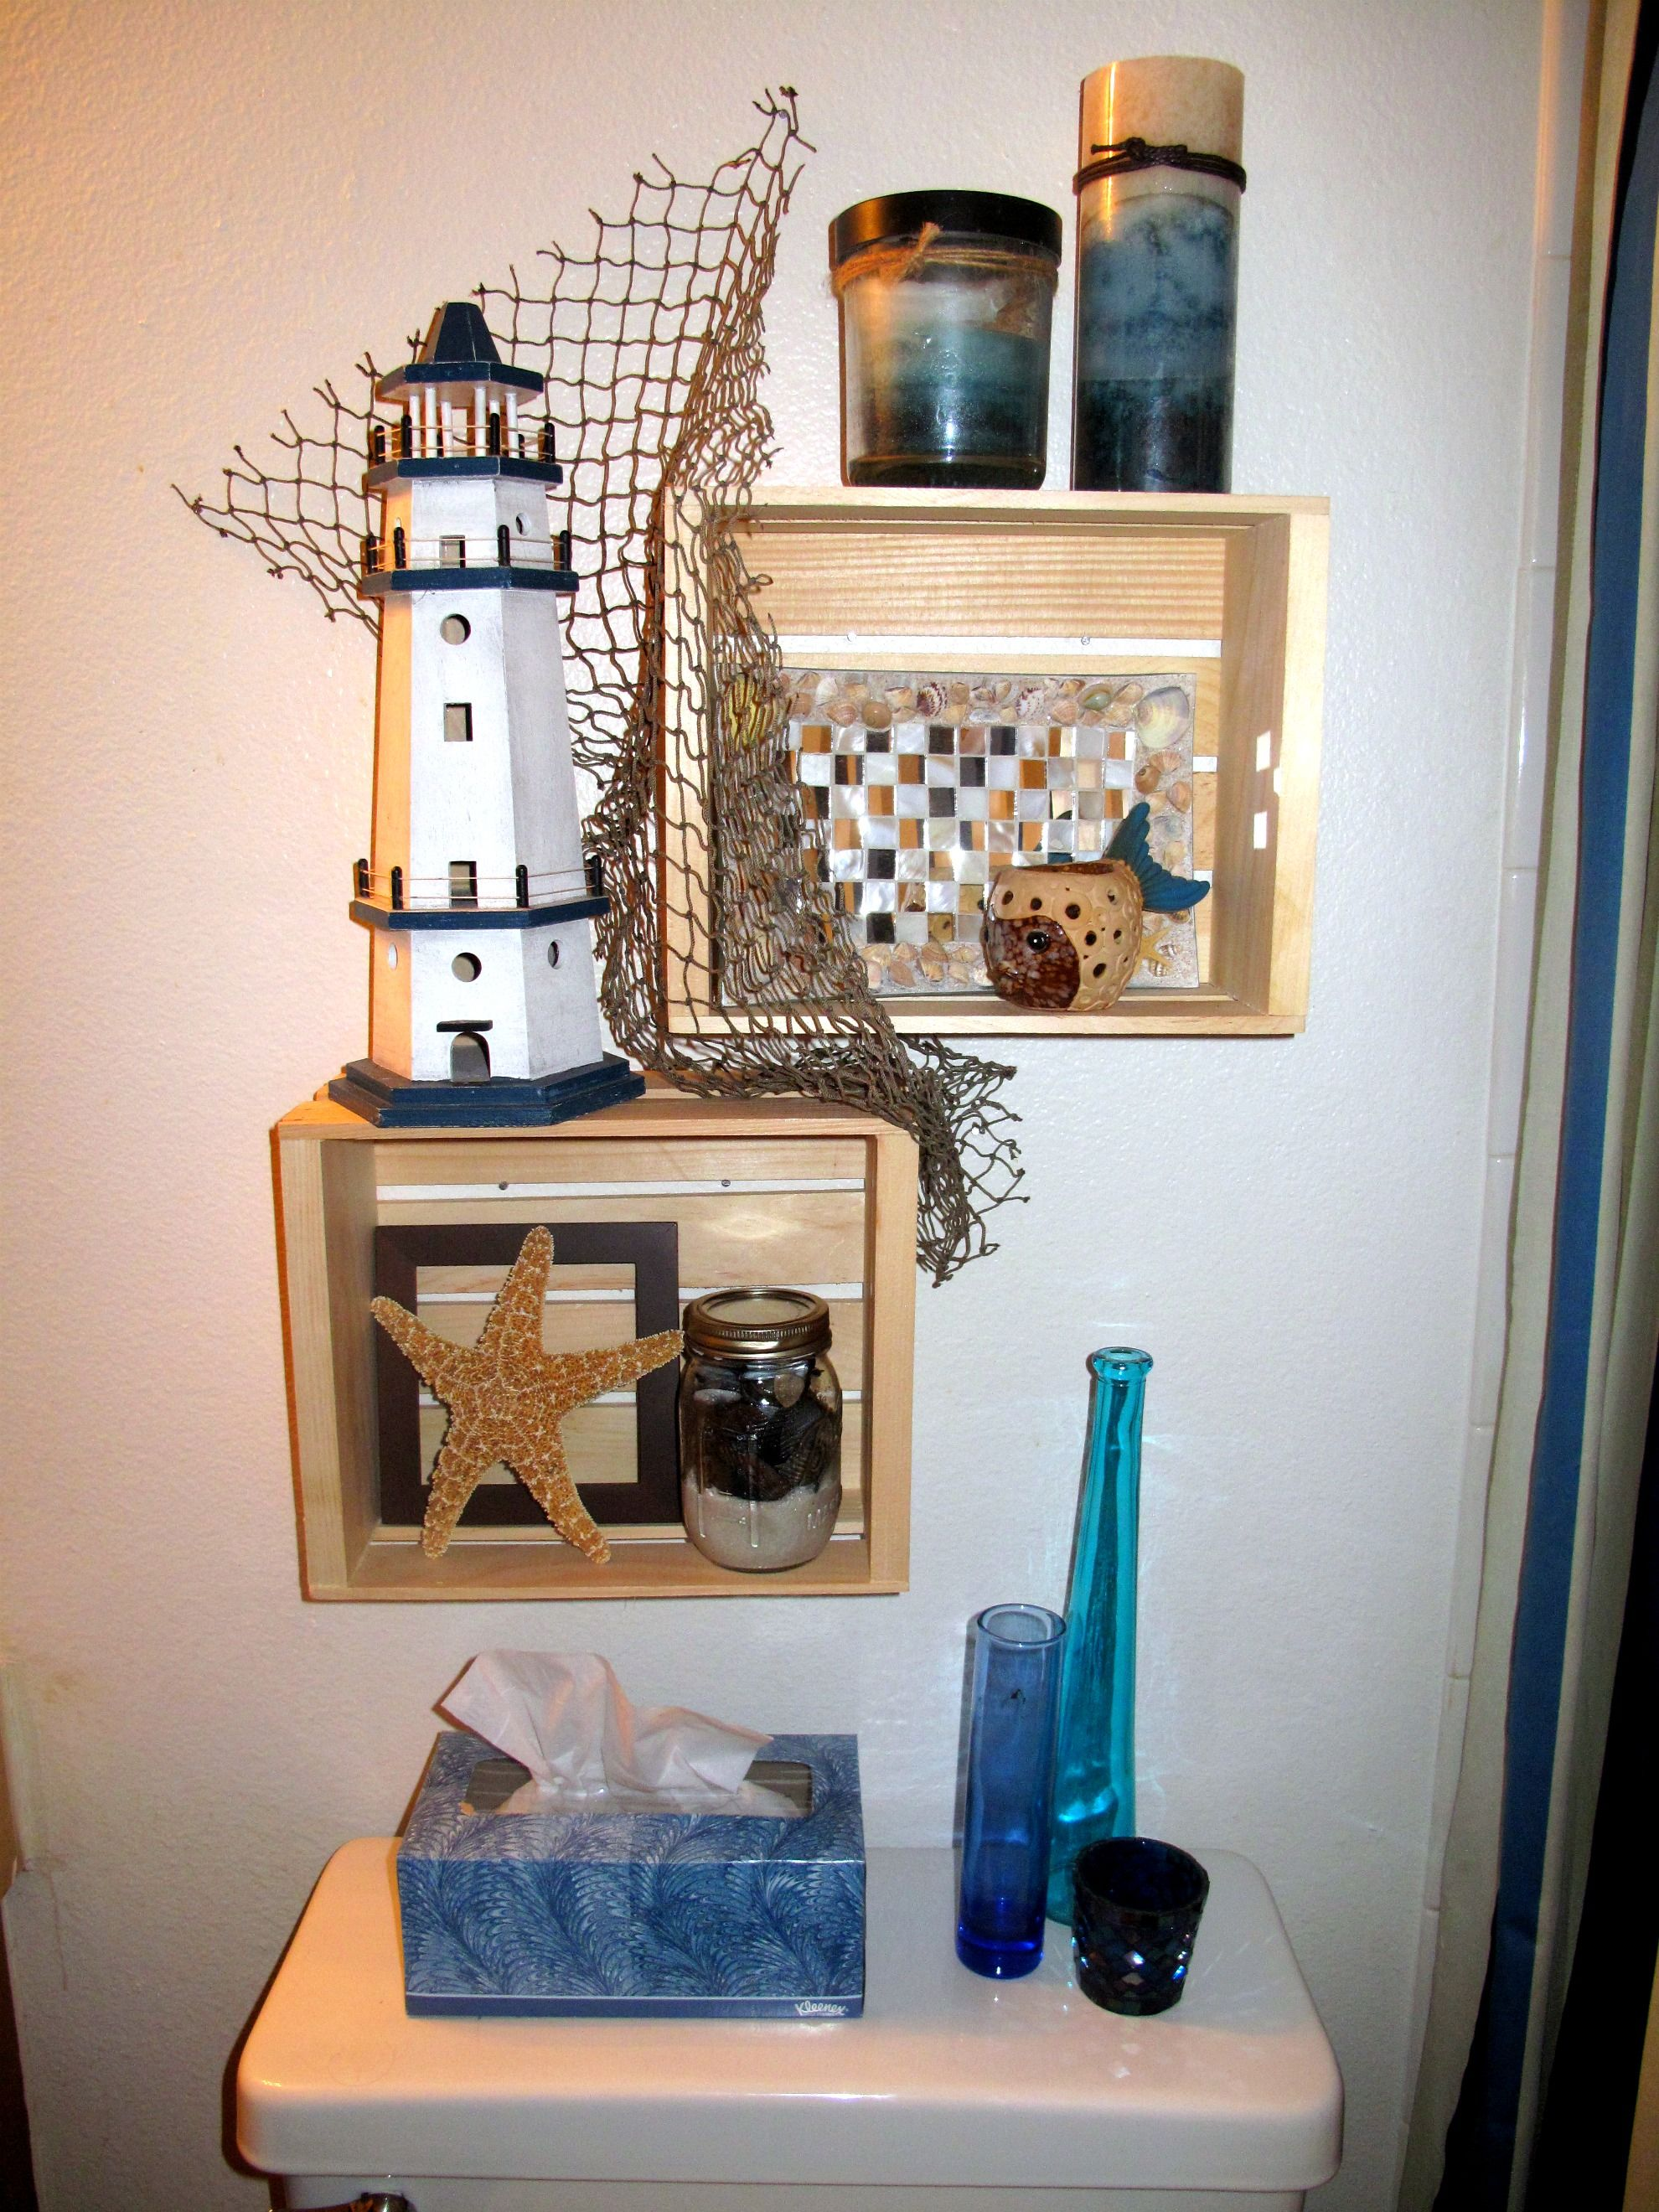 Beach Themed Shelves I Just Finished In My Bathroom